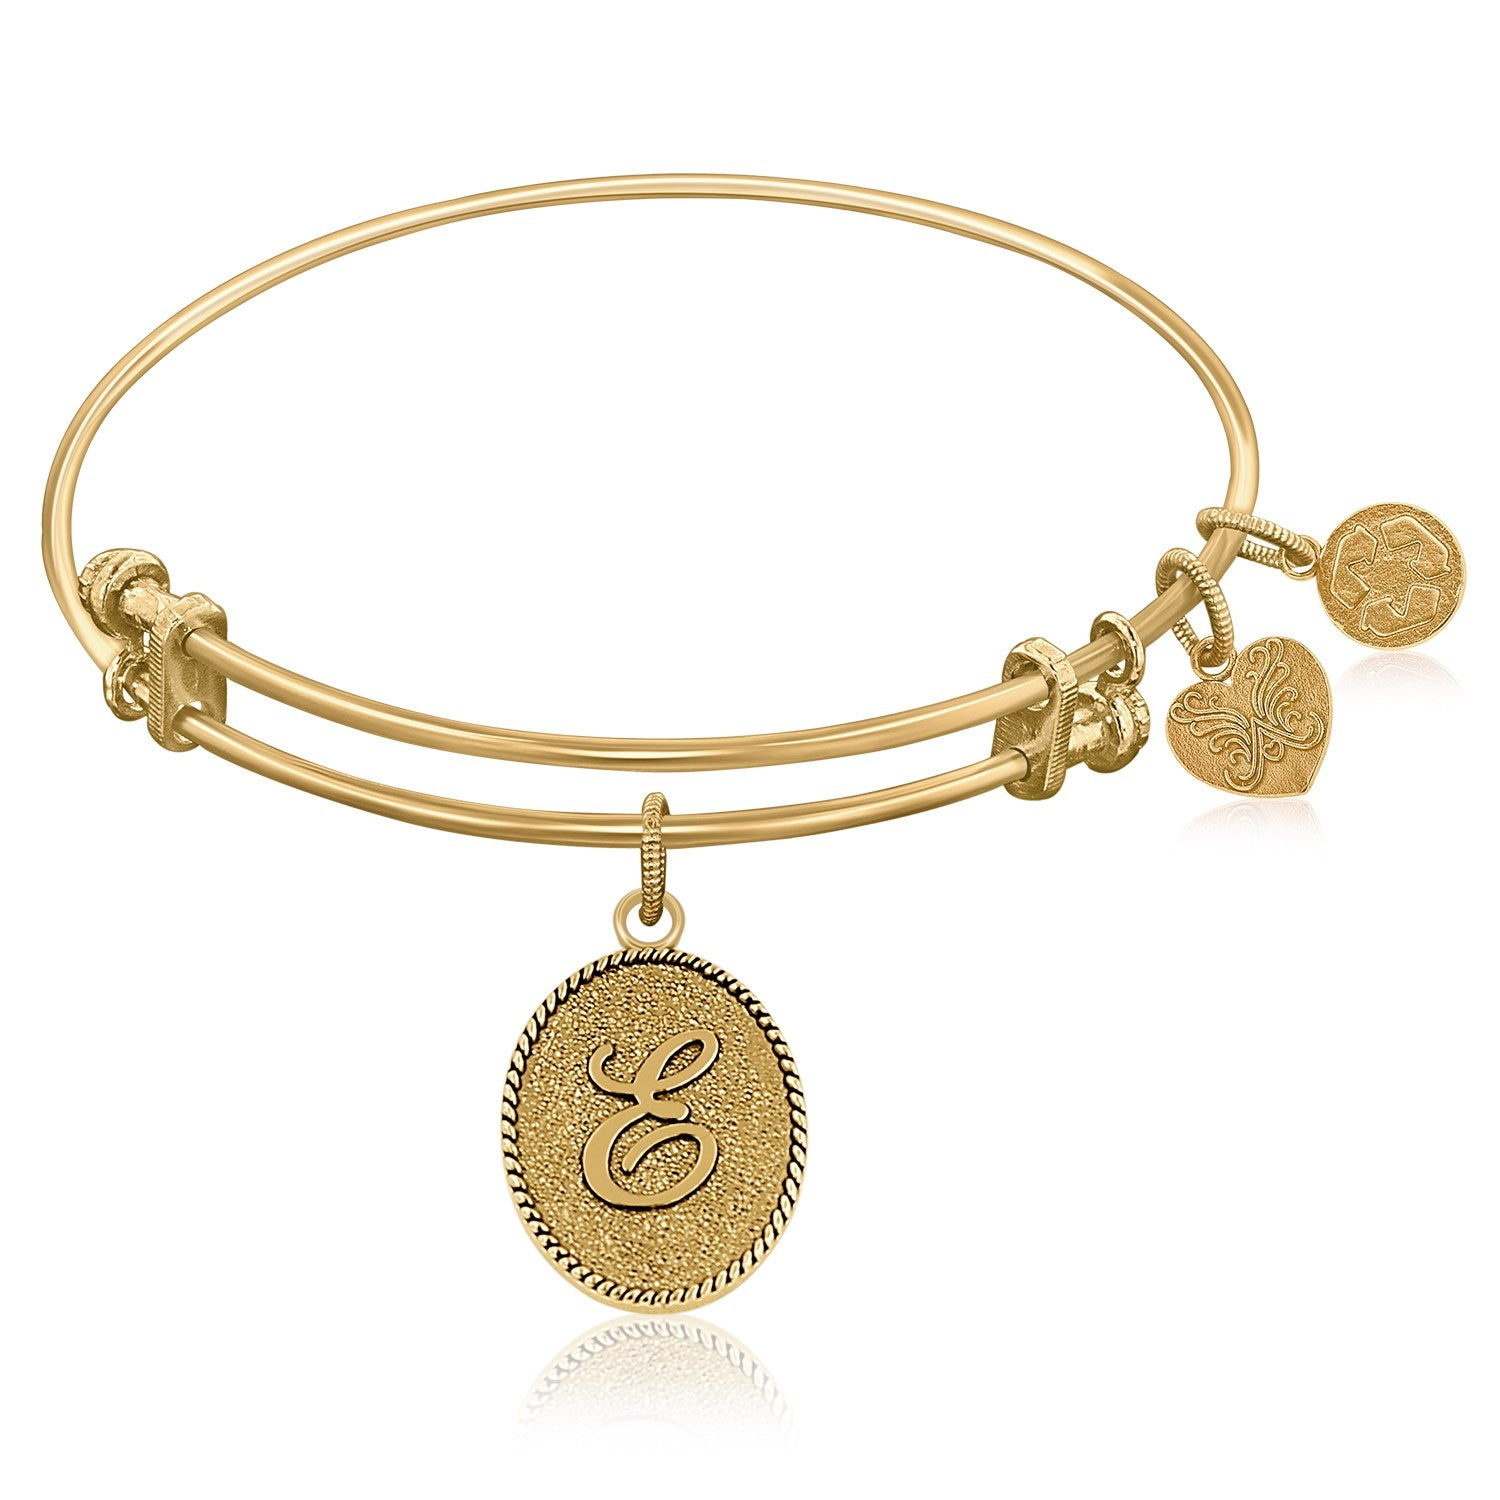 Expandable Bangle in Yellow Tone Brass with Initial E Symbol